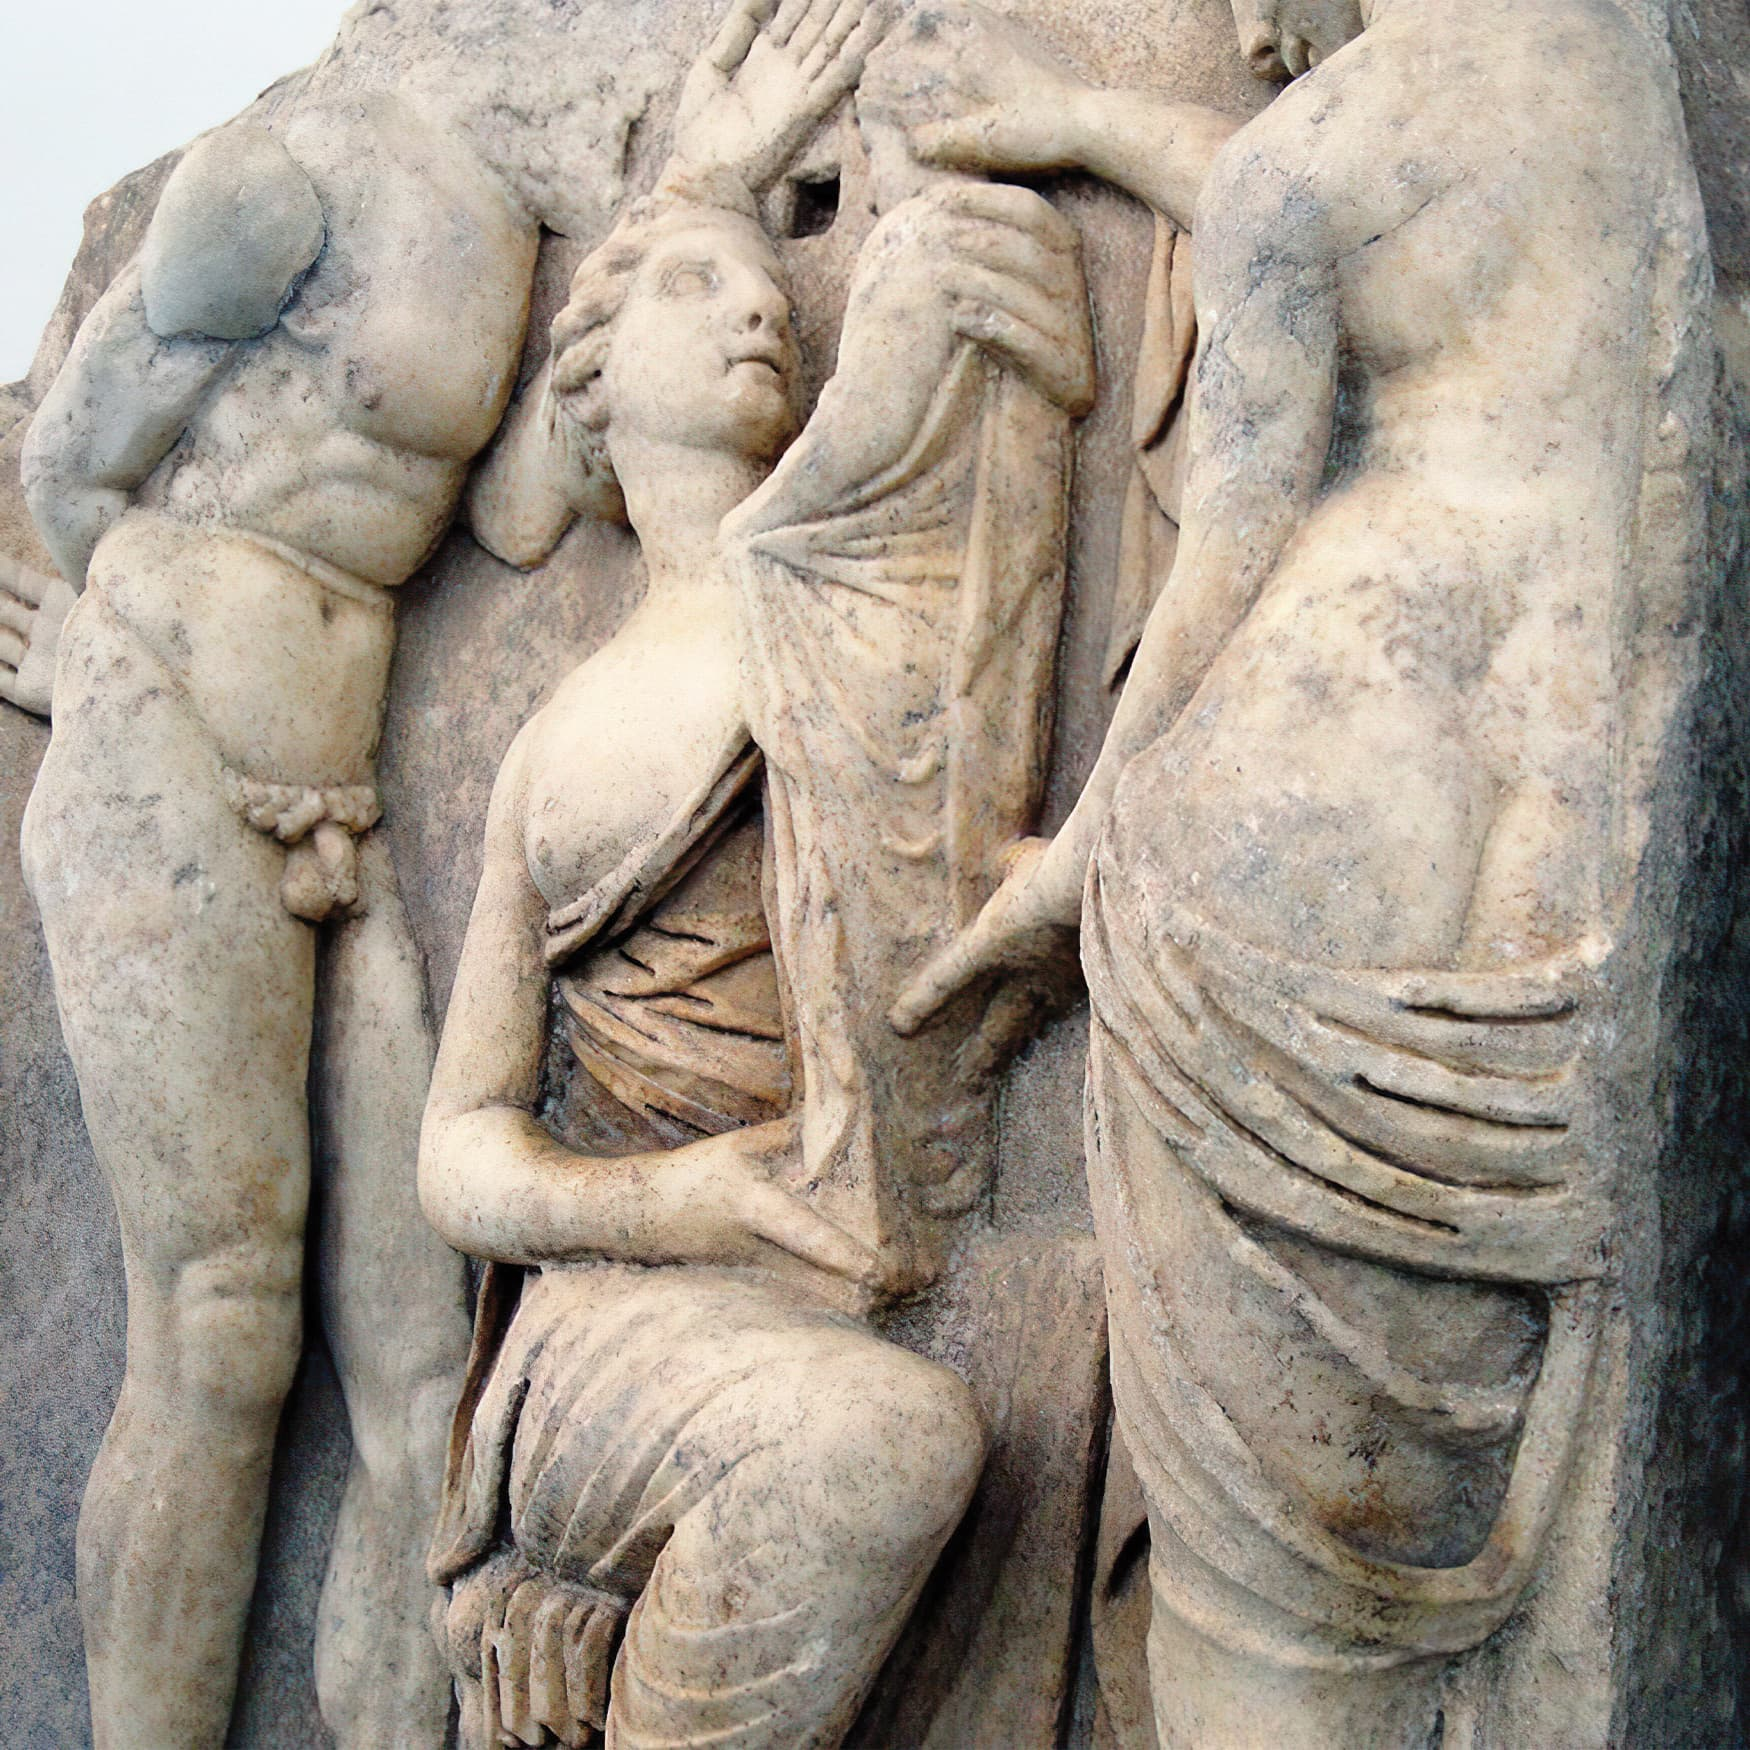 Graeco-Roman archaeological stele located in the eastern Mediterranean.